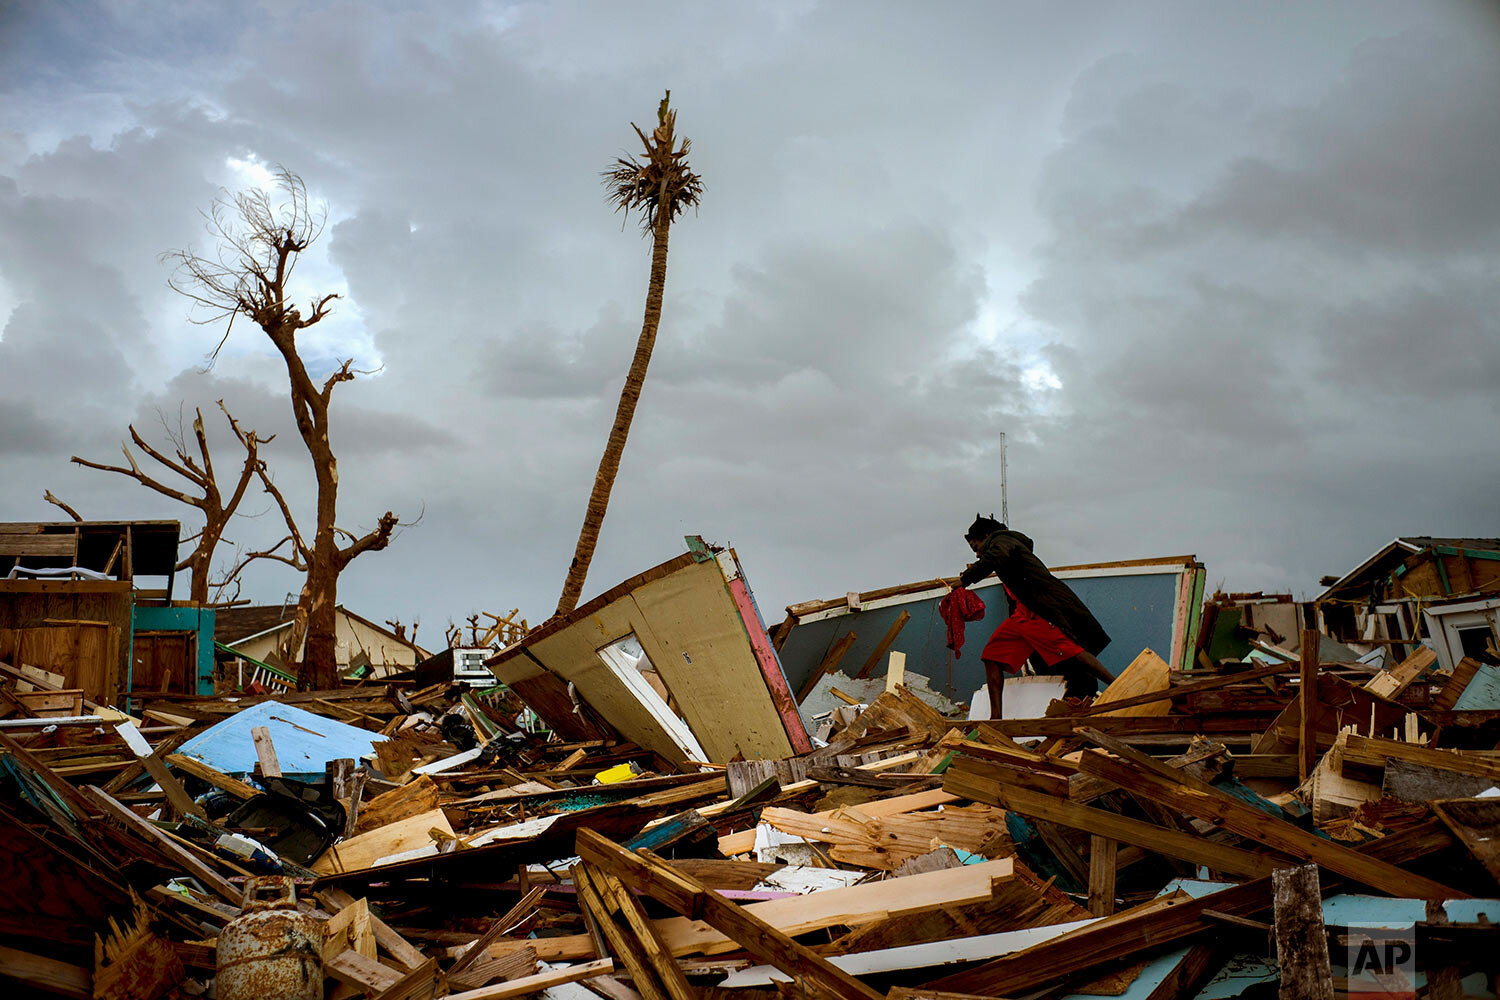 Vladimir Safford an immigrant from Haiti walks through the rubble next to his home in the aftermath of Hurricane Dorian in Abaco, Bahamas, Monday, Sept. 16, 2019. (AP Photo/Ramon Espinosa)